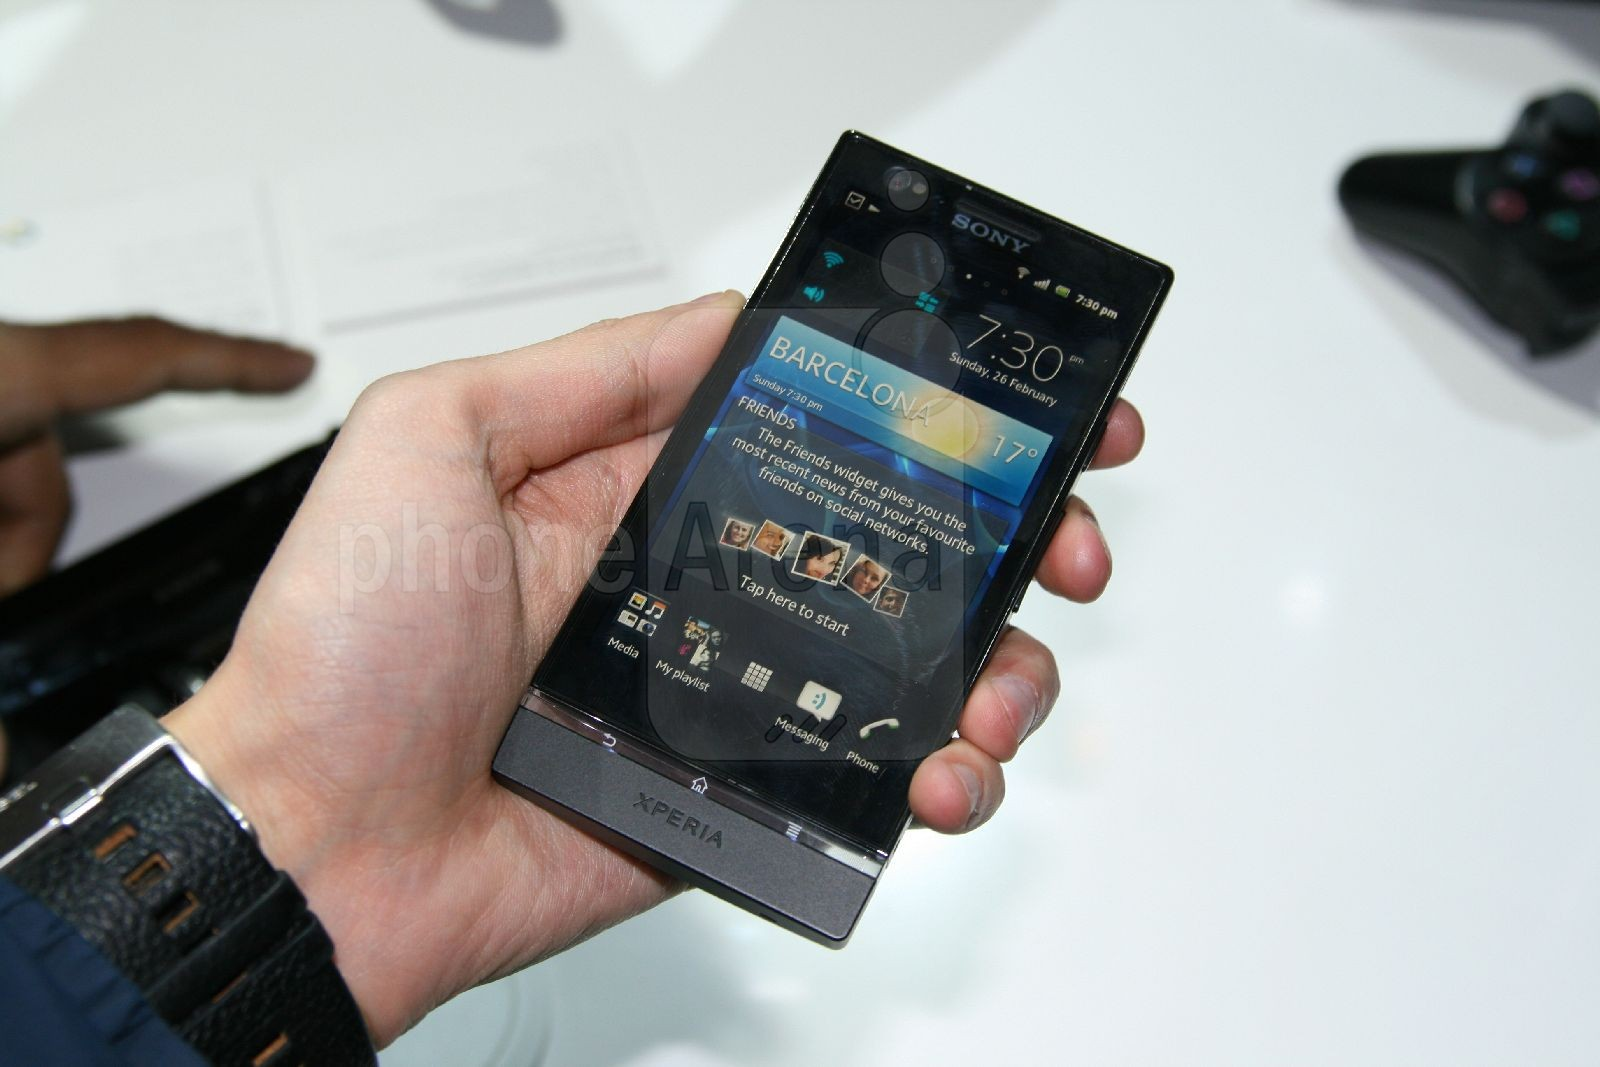 Sony Xperia P Hands on Review   PhoneArena reviews